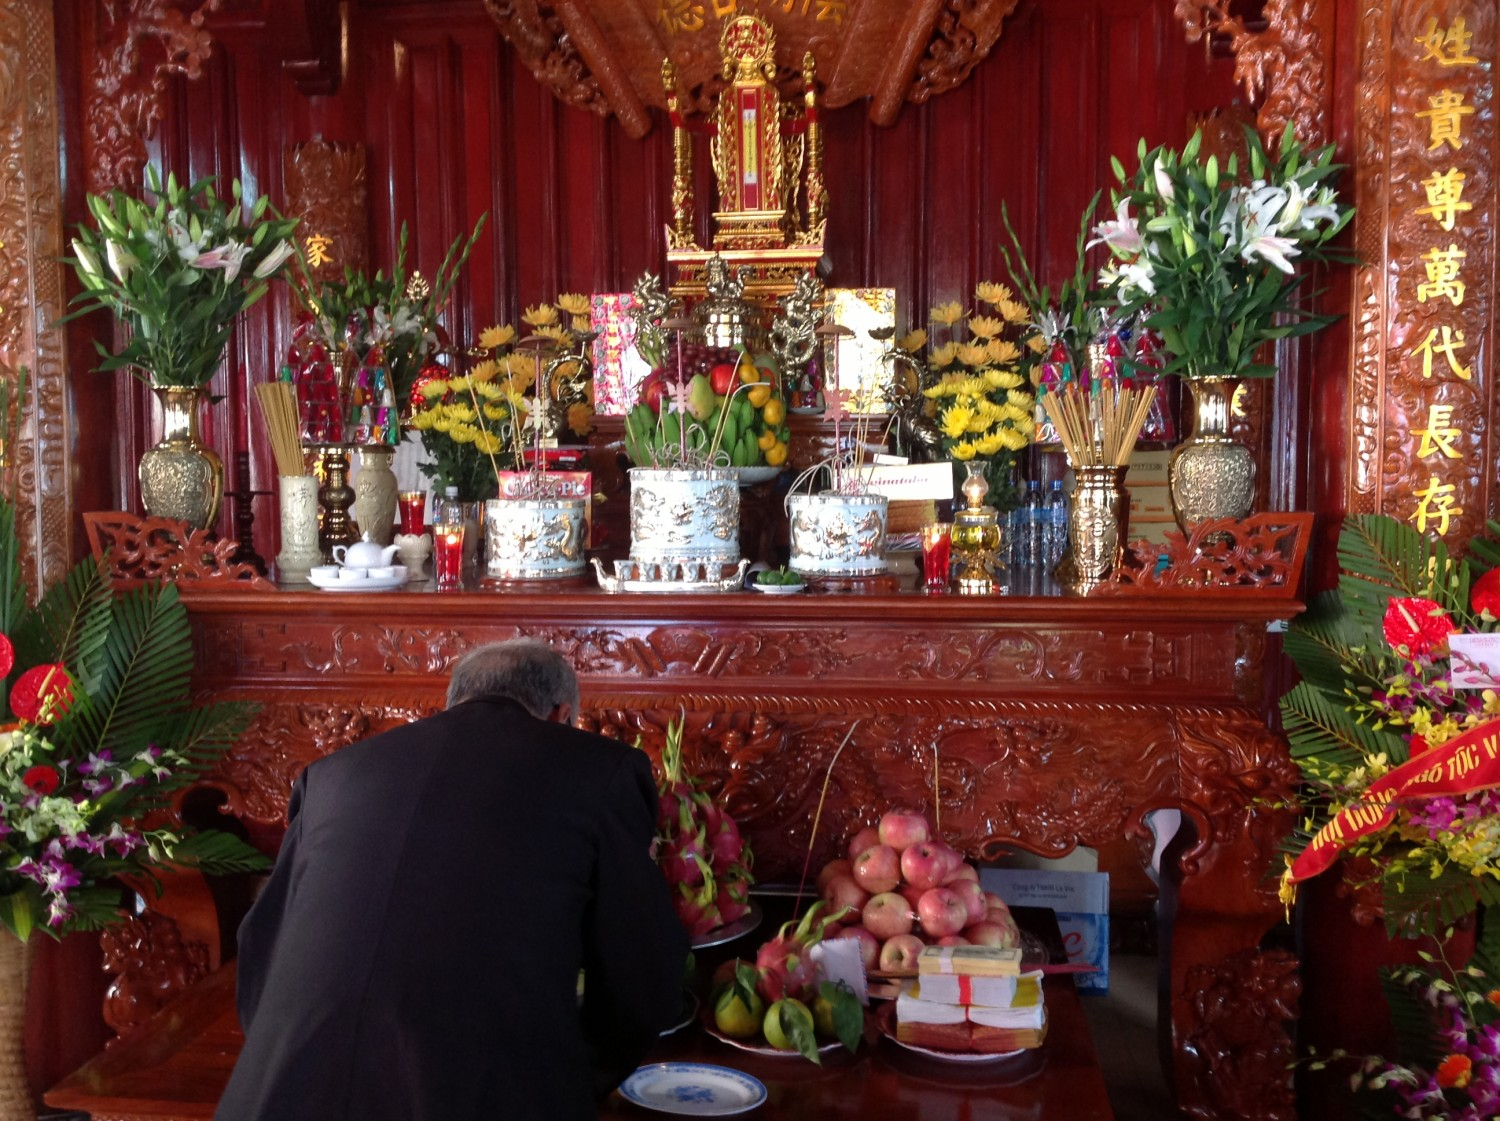 Ancestor alter of Vietnamese people at Tet